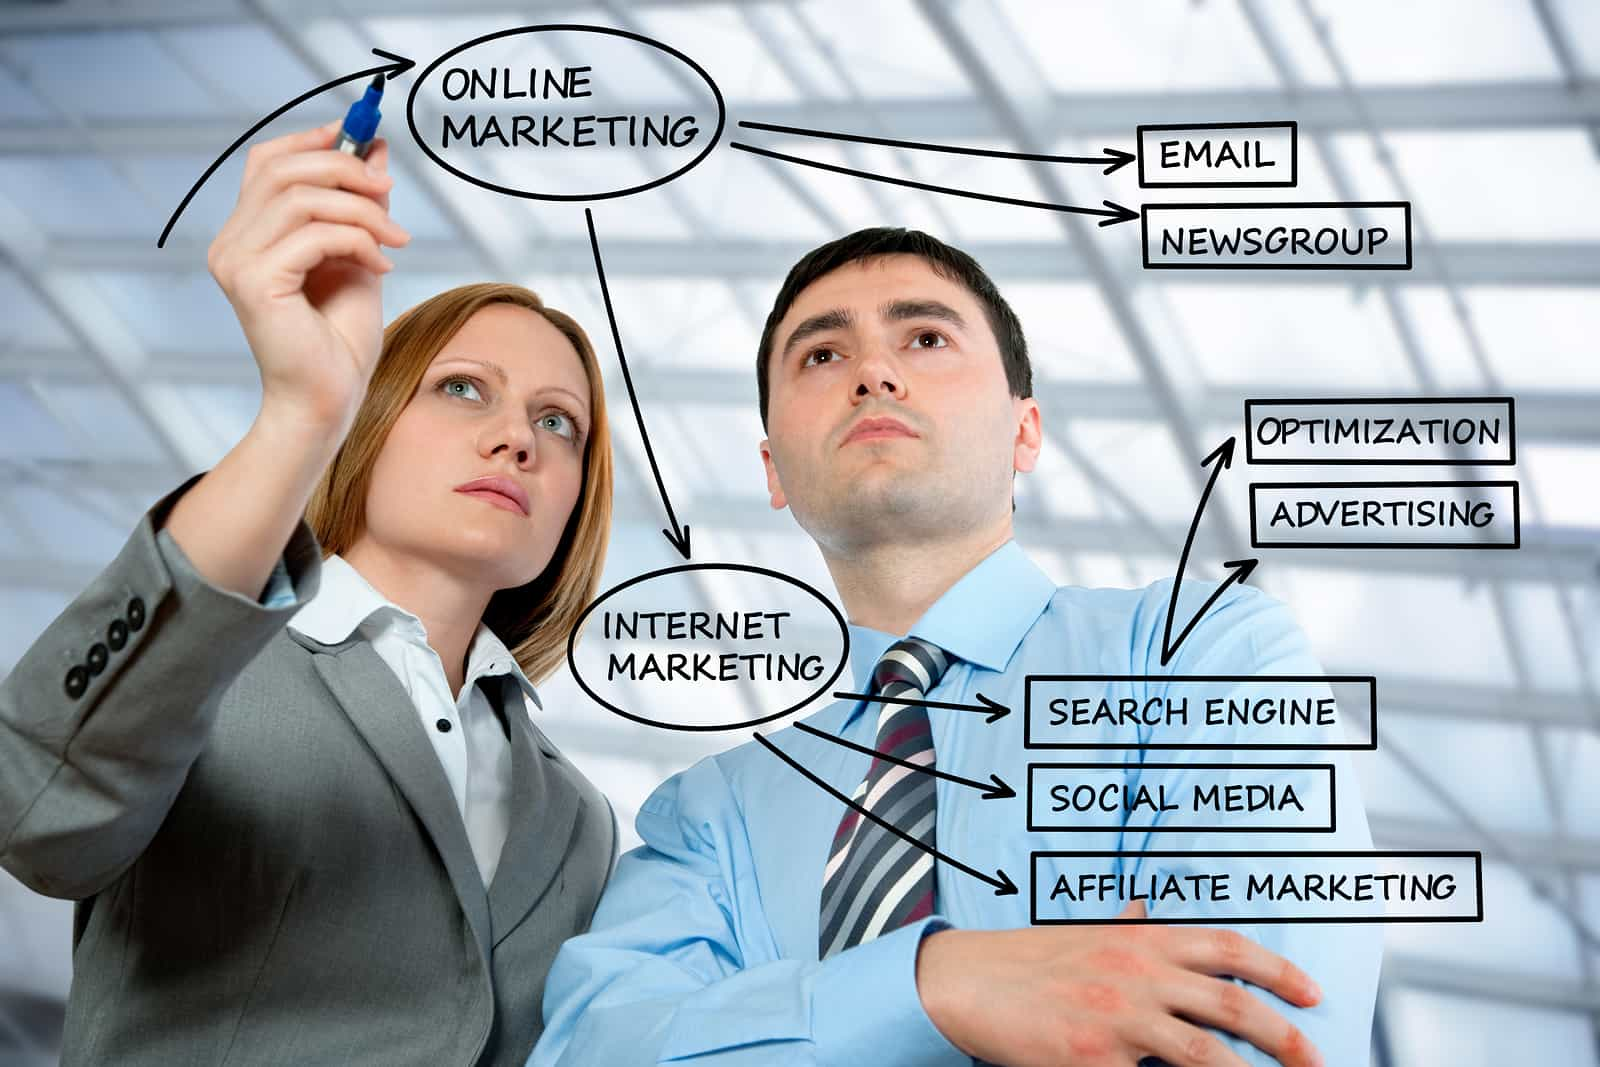 Online Marketing Company: What Services It Has In its Package